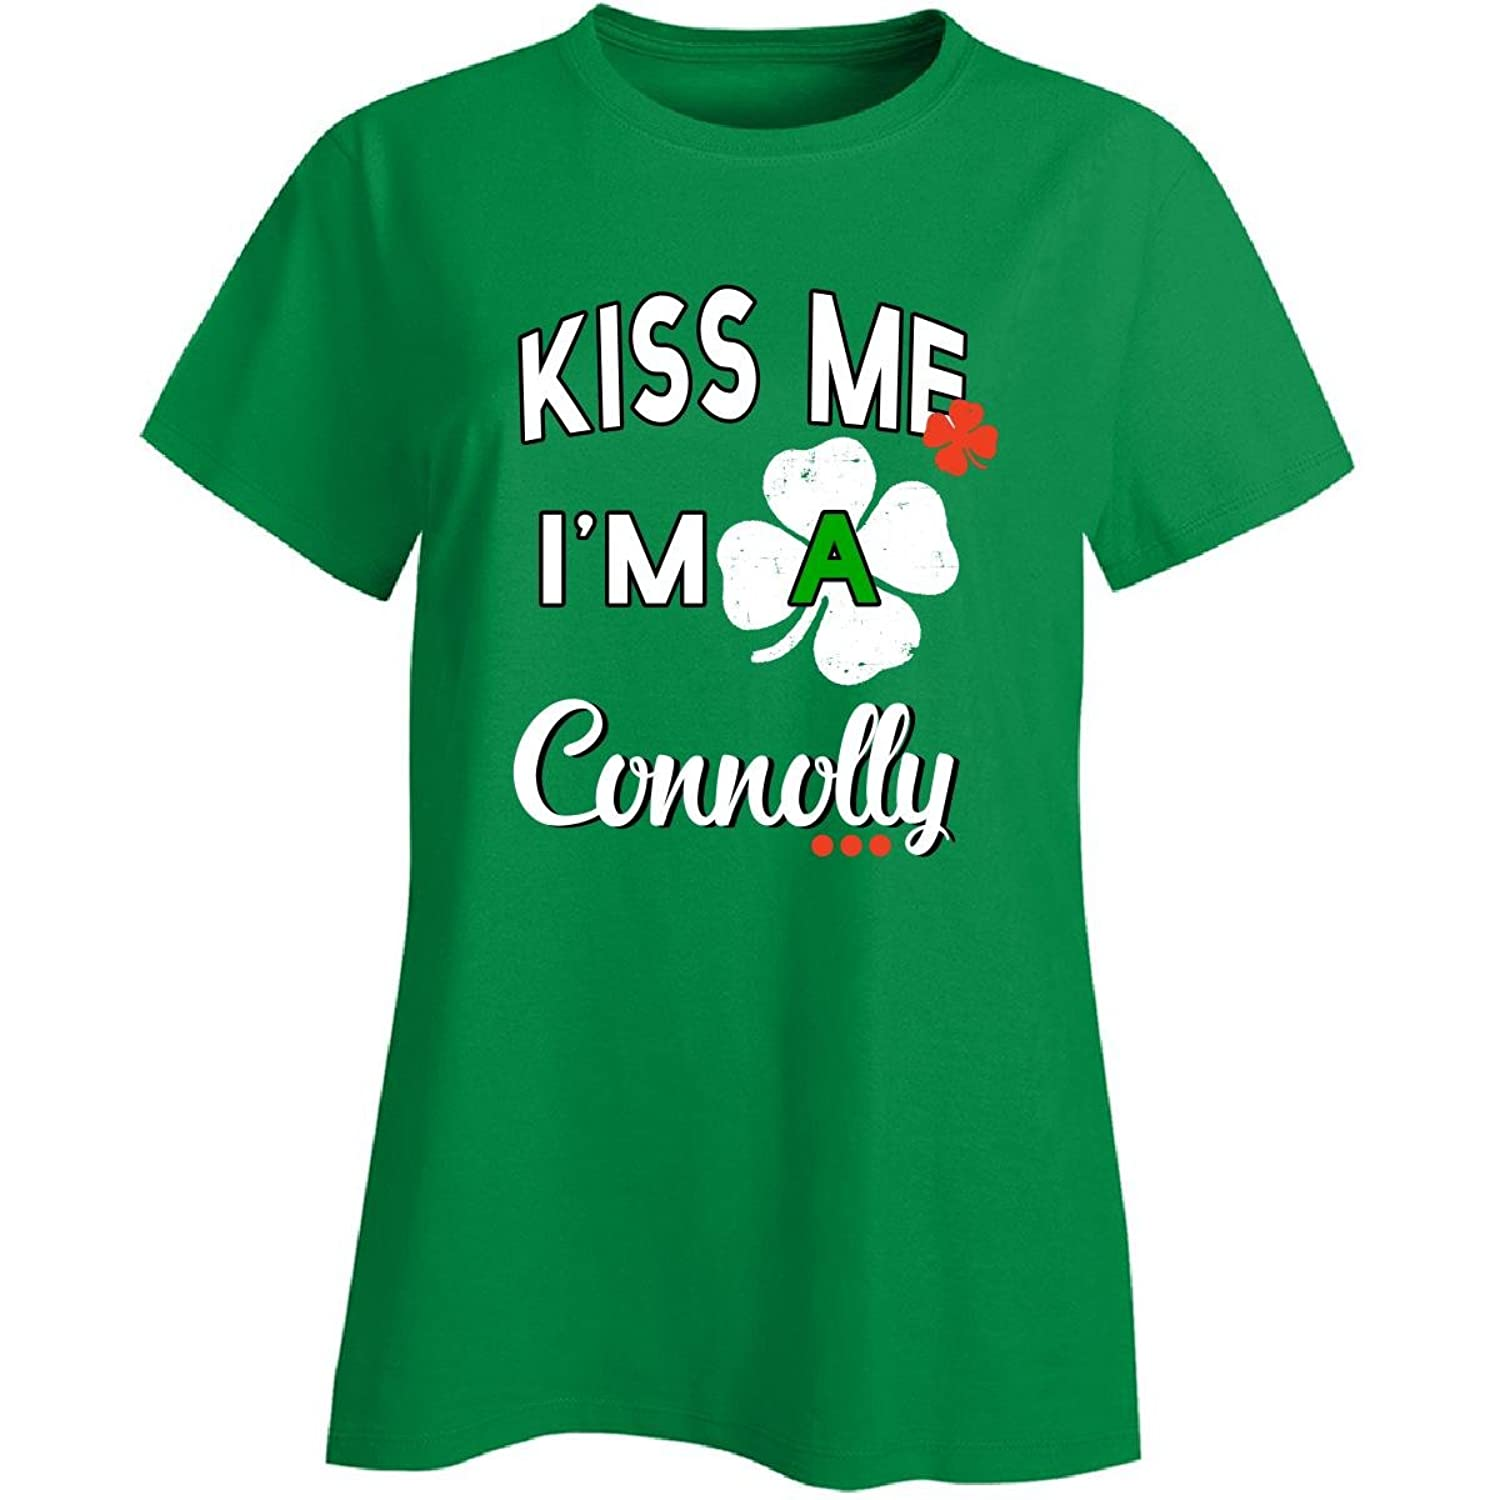 Funny St Patricks Day Irish Gift - Kiss Me I'm A Connolly - Ladies T-shirt